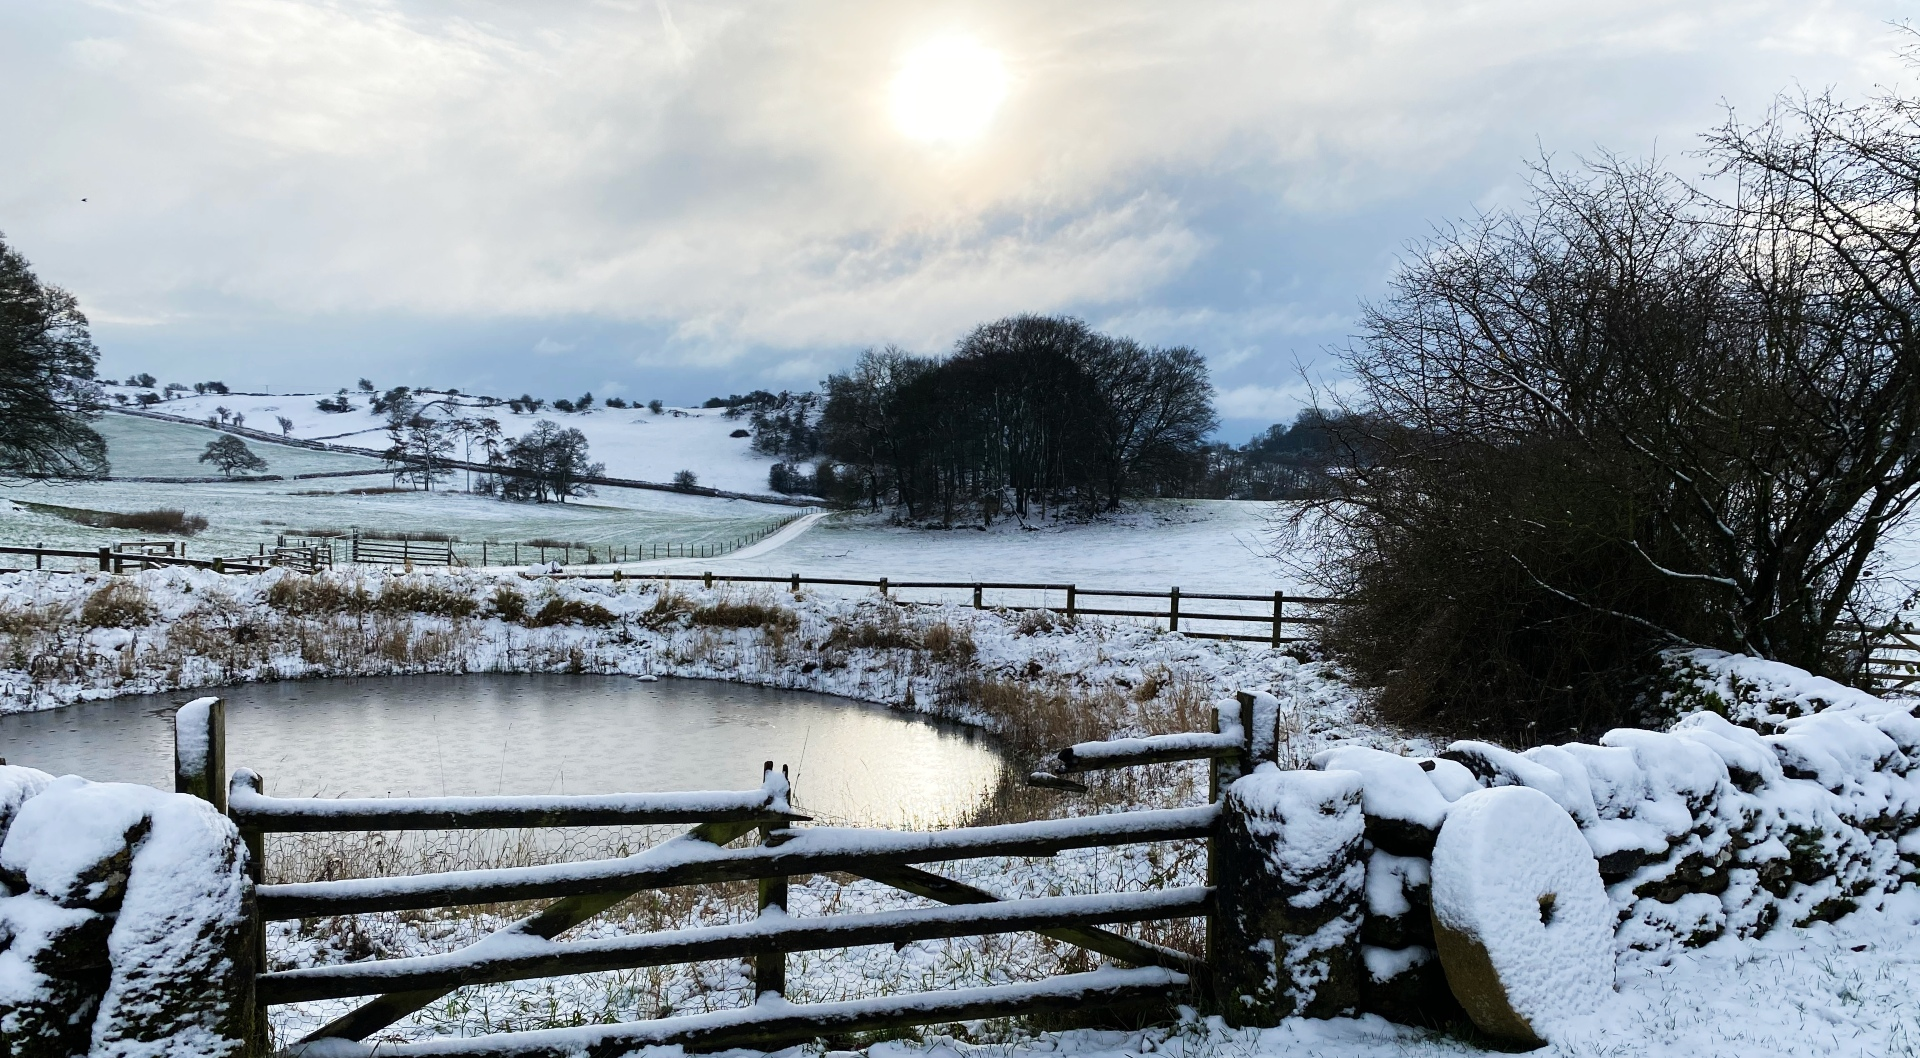 dew pond at Hoe Grange in the snow